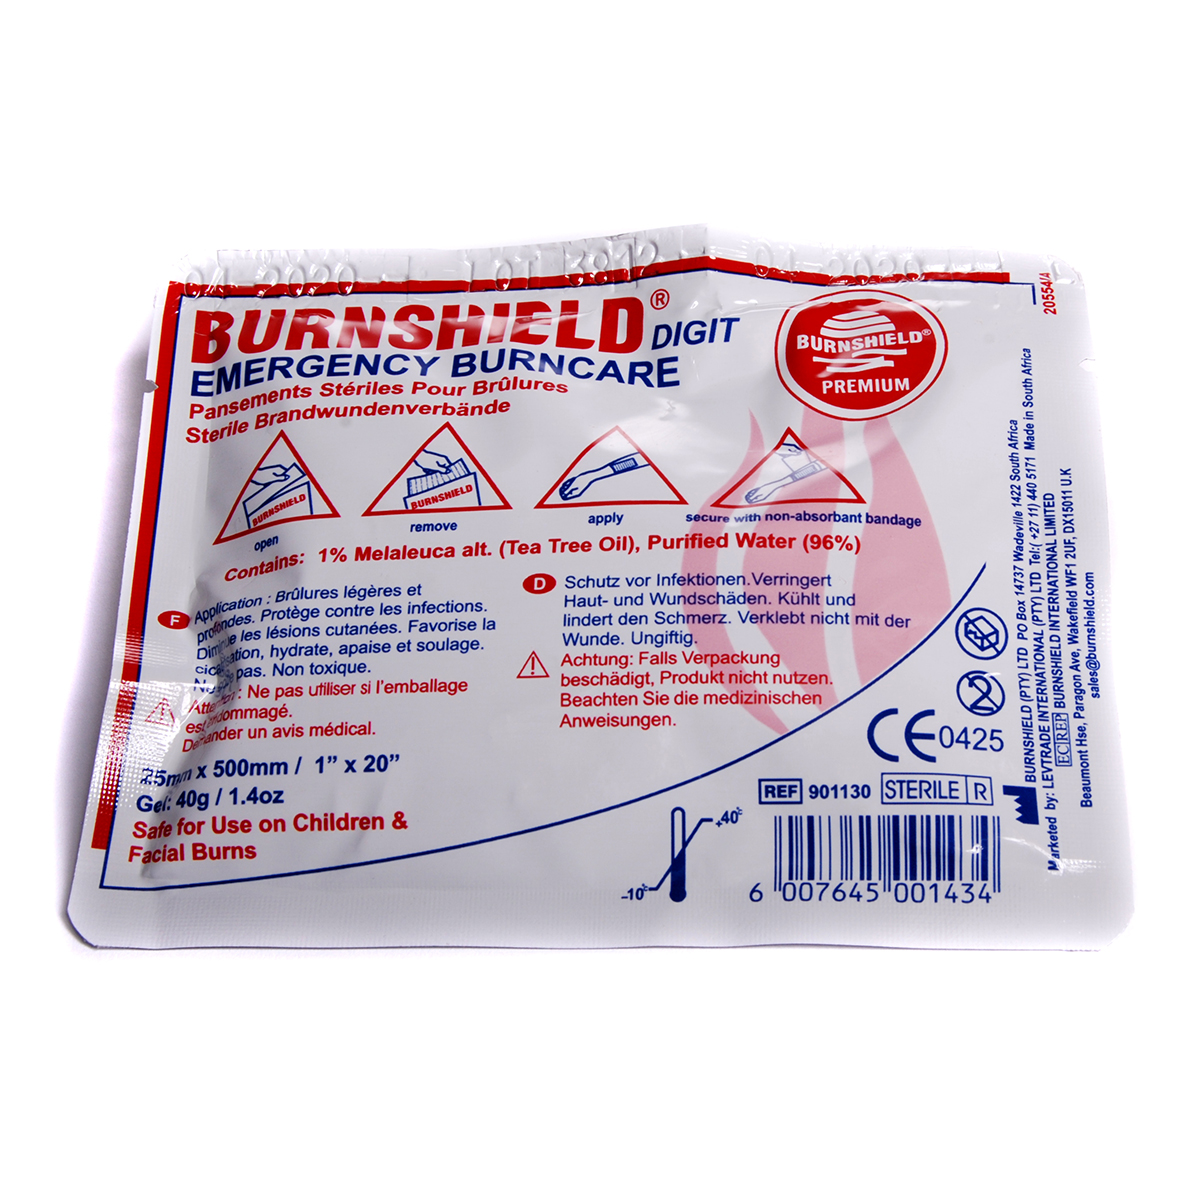 2.5cm x 50cm Burnshield® Digit Strip Dressing